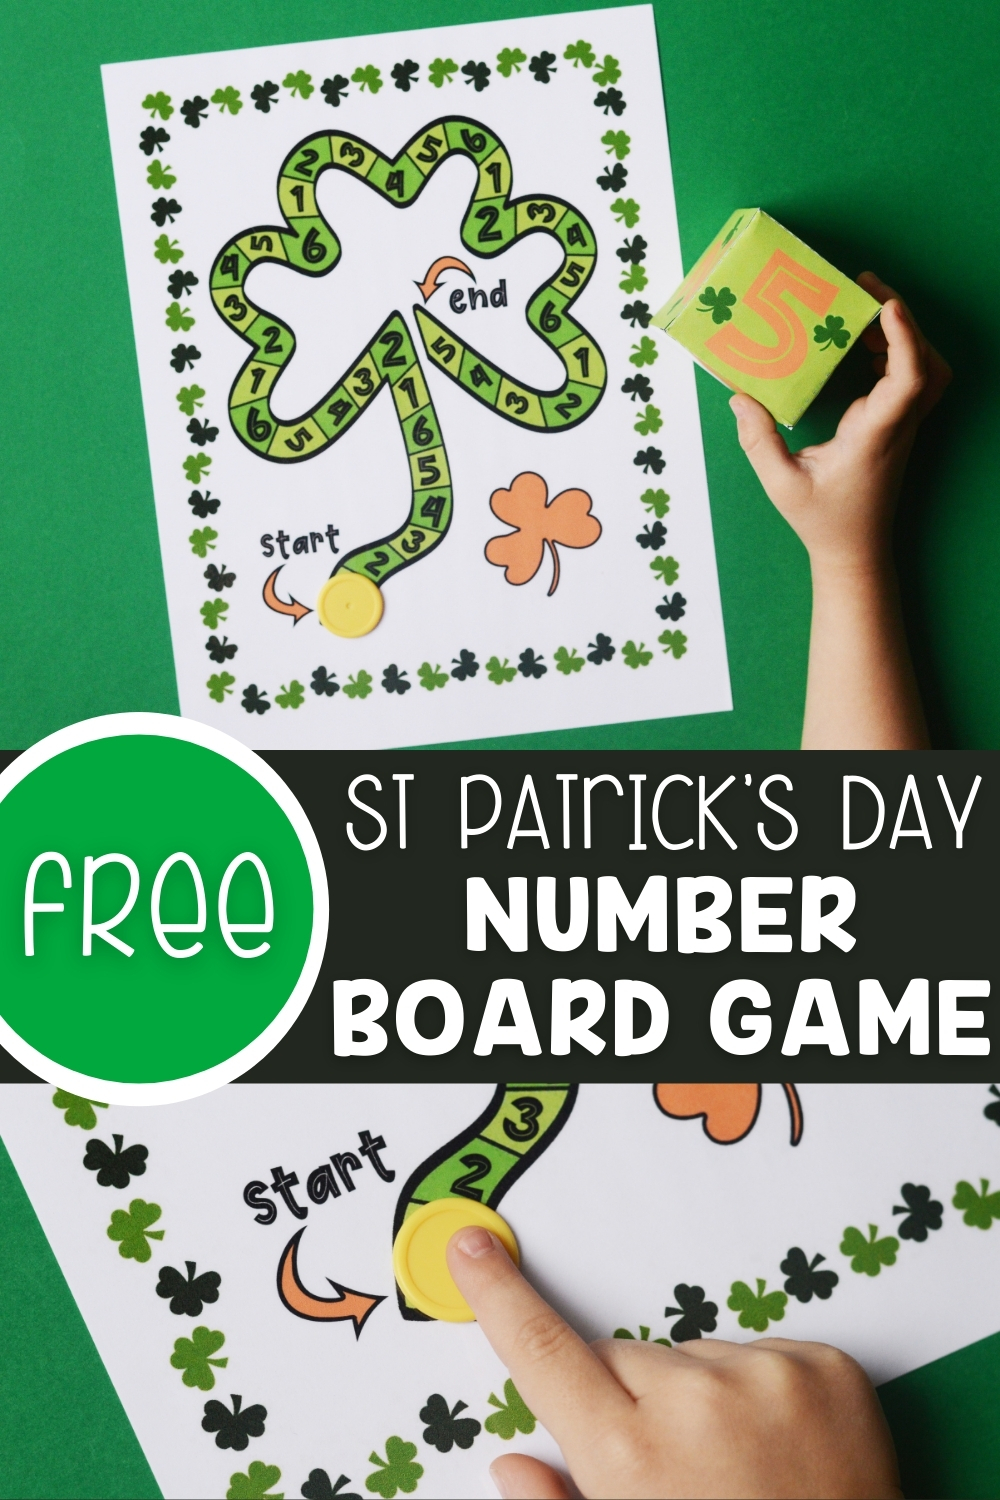 Free St Patrick's Day Number Board Game